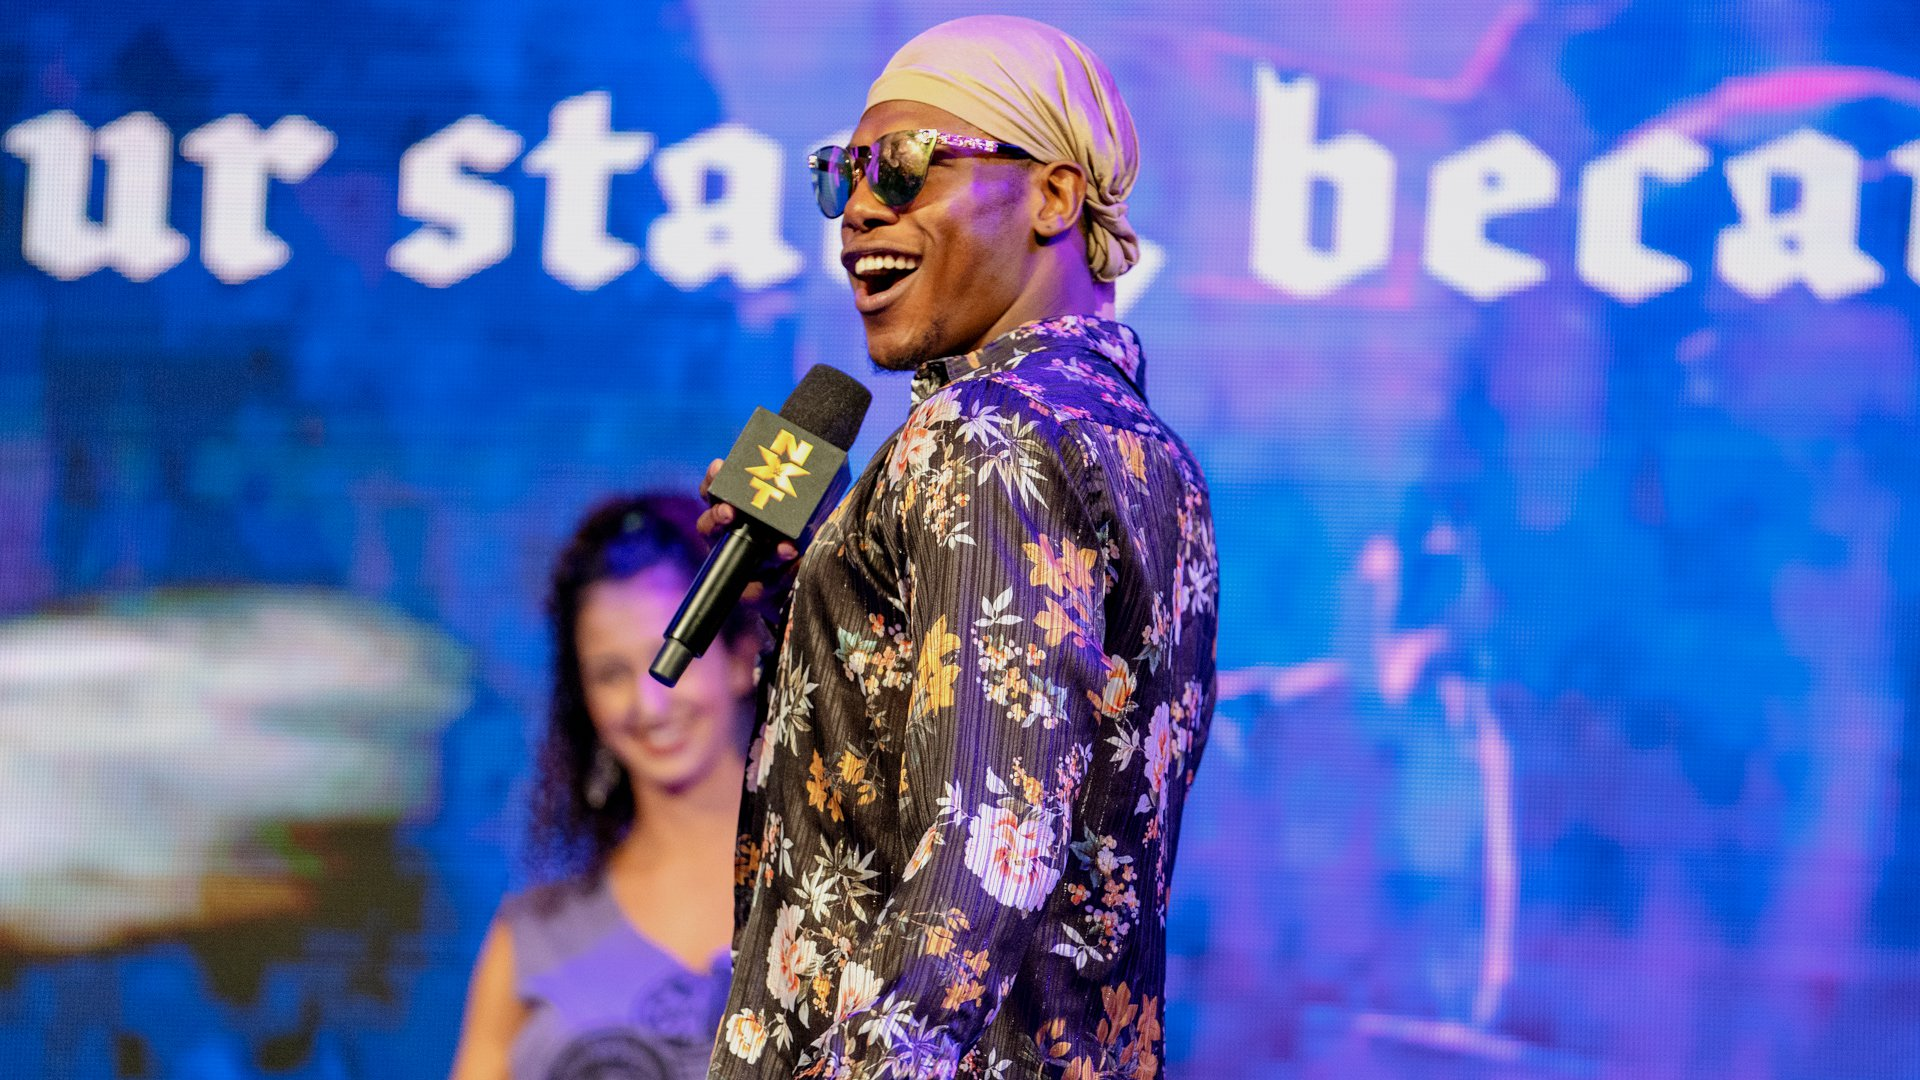 Velveteen Dream chante sa propre version de l'hymne national: WWE NXT, 1er Mai 2019